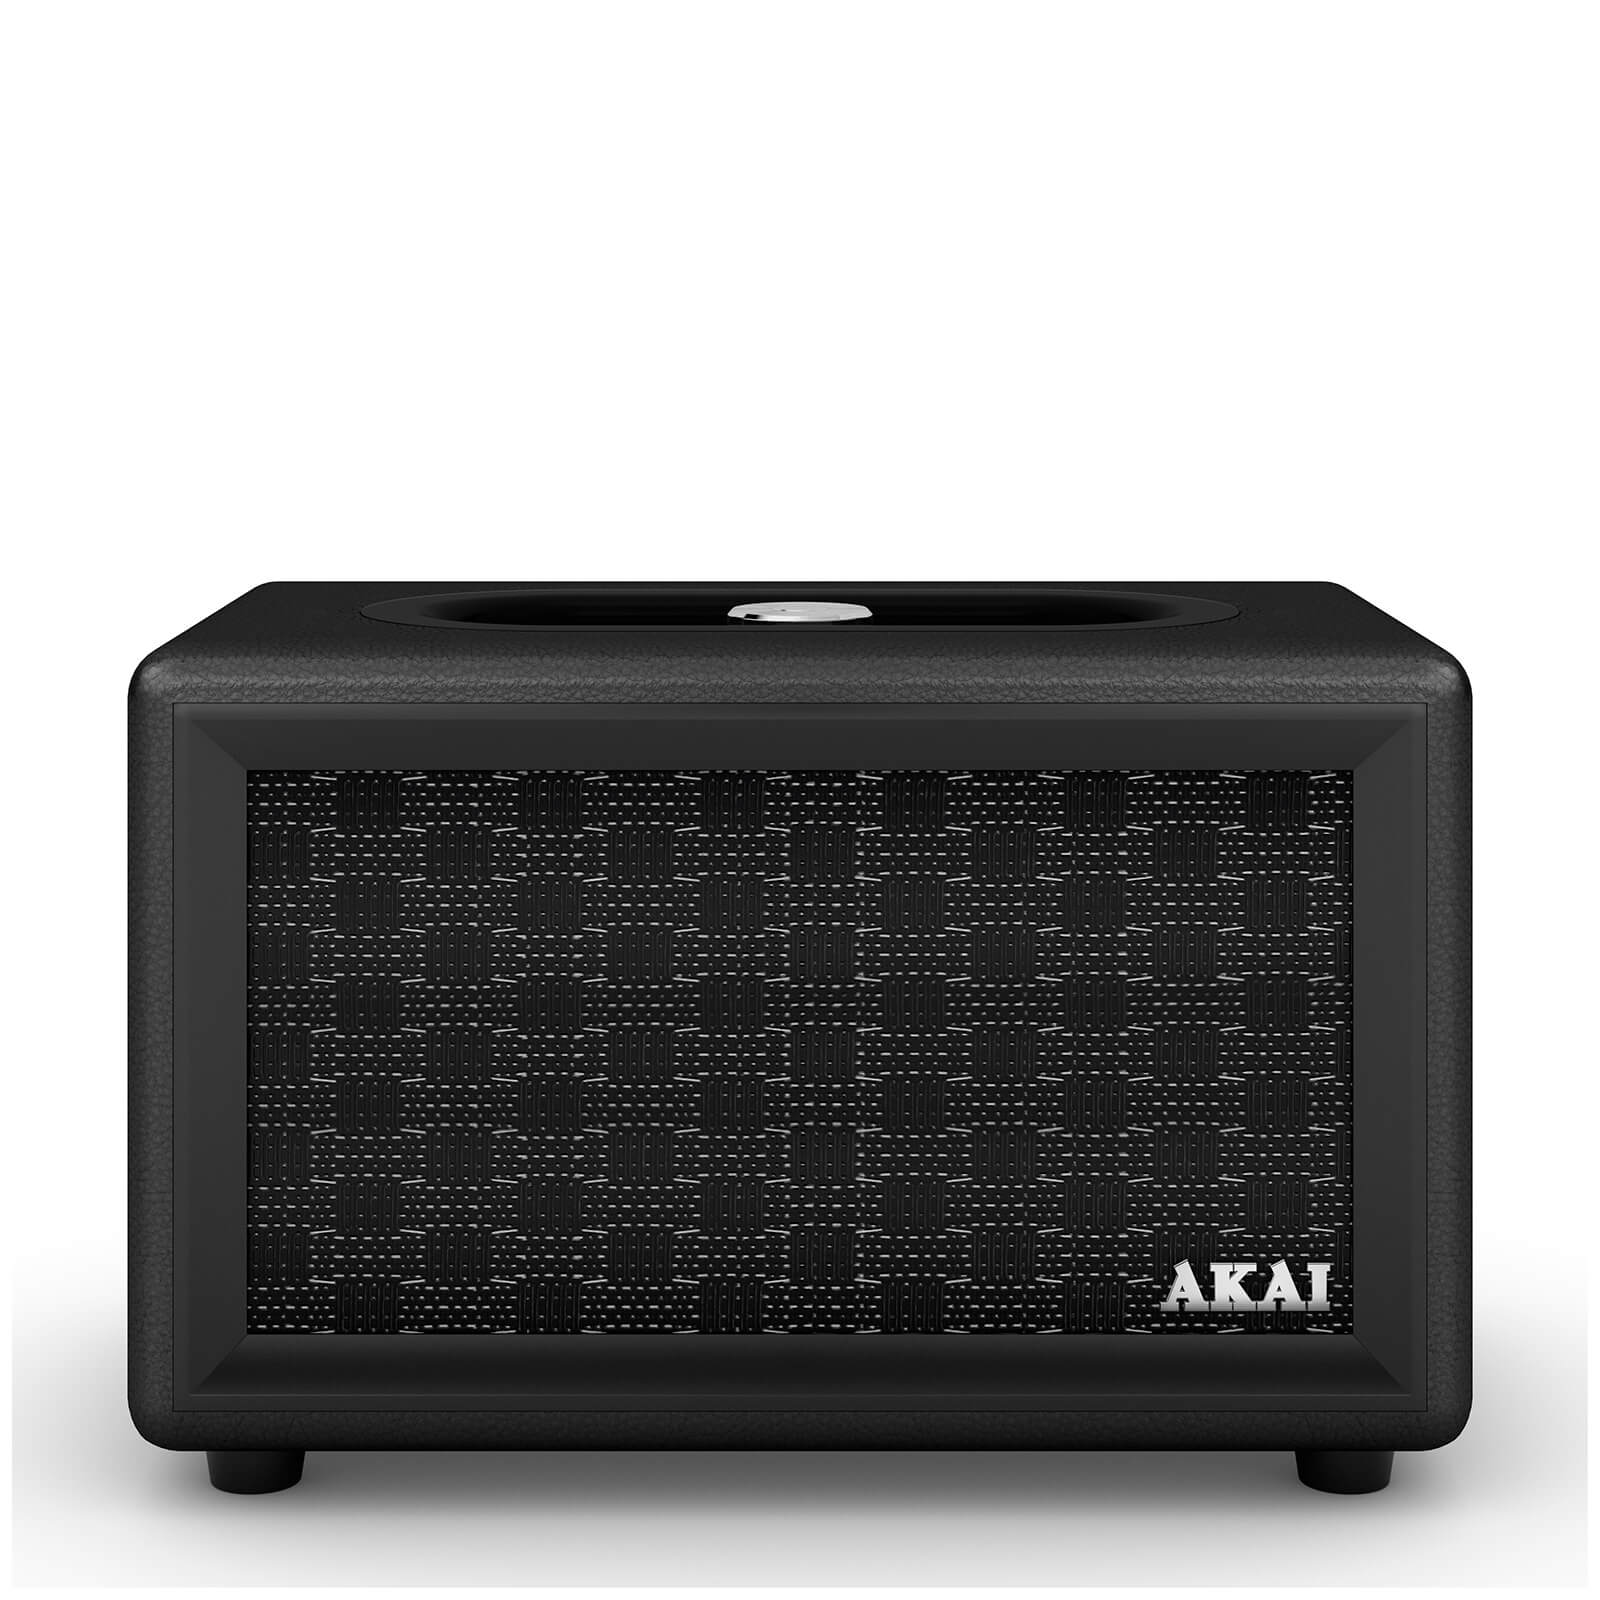 Akai Retro Bluetooth Speaker (2 x 20W) - Black